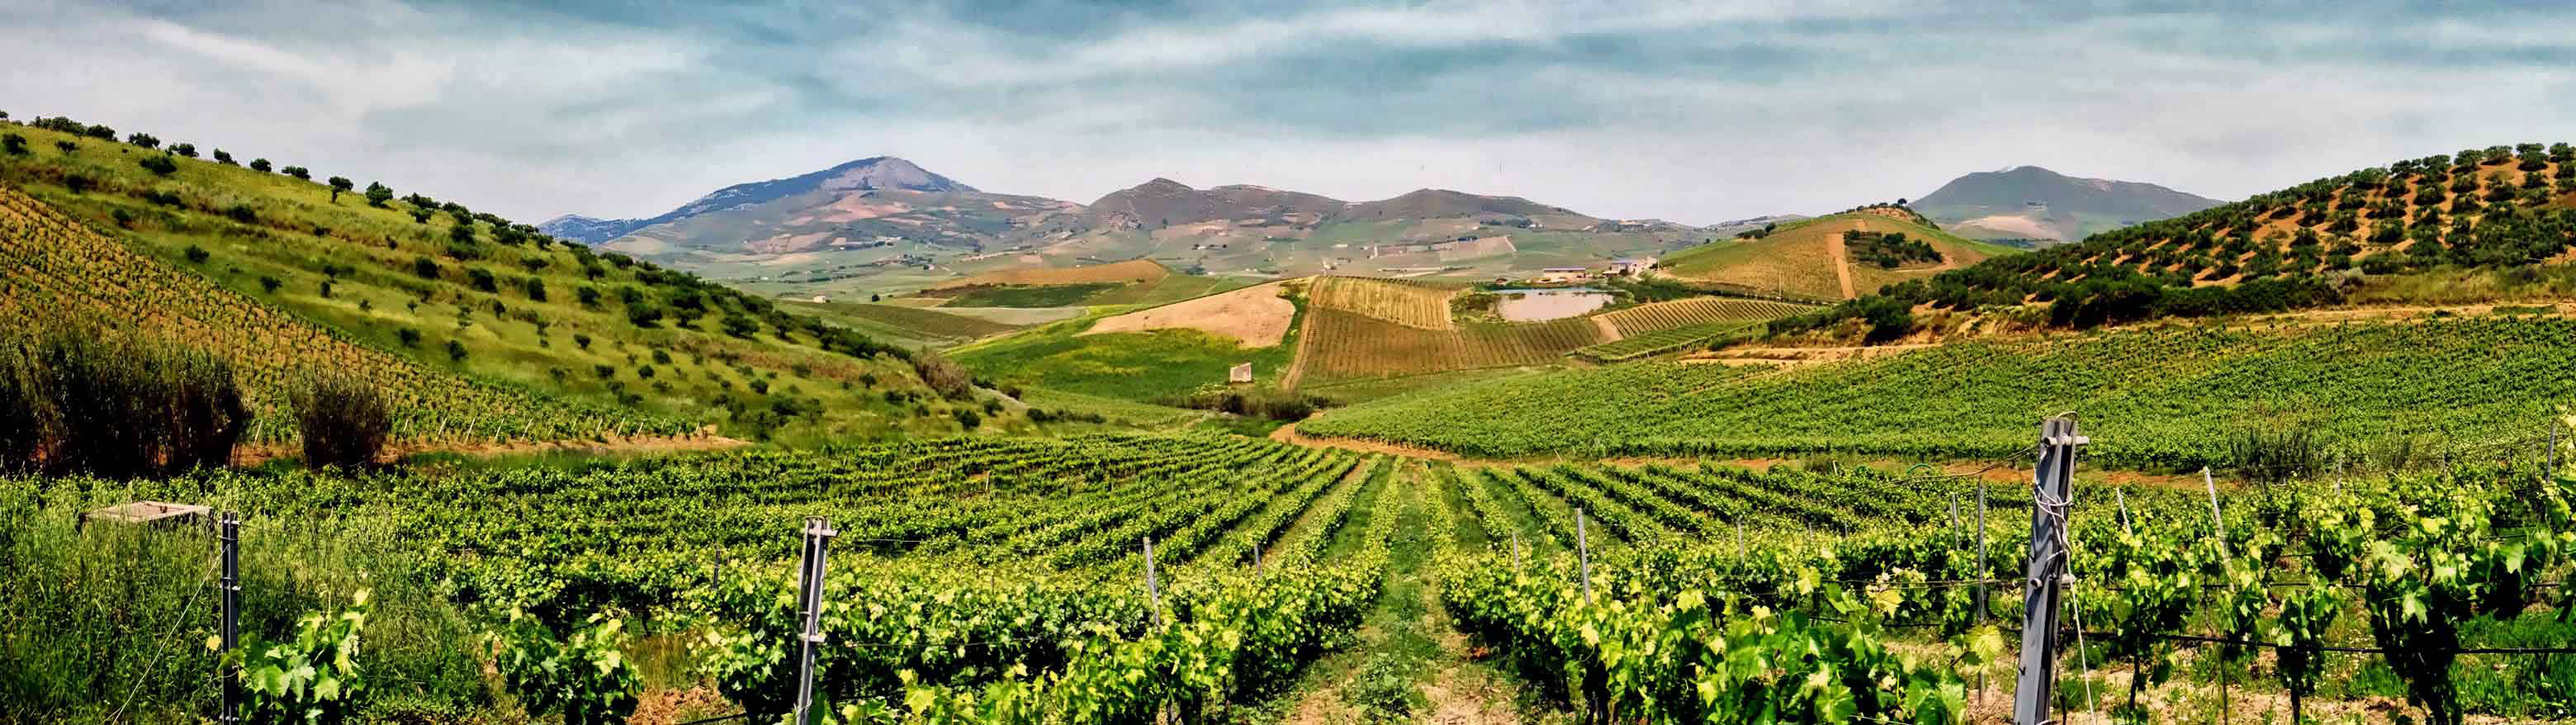 Larry-Arsenault-Pano-Vineyards-Sicily-sm-web